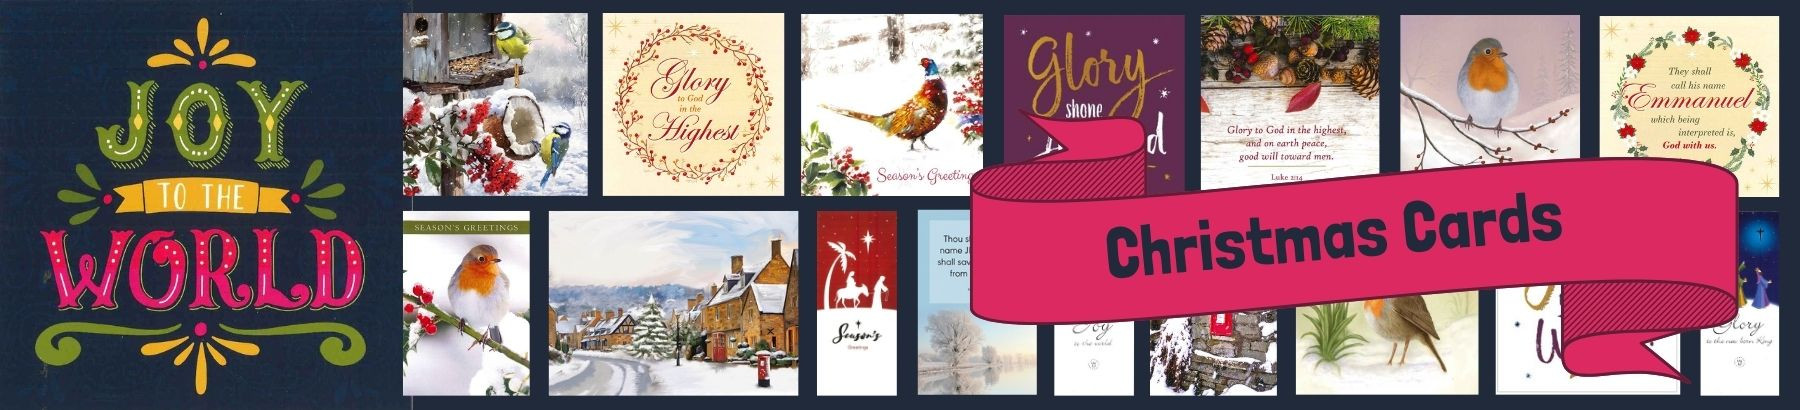 Christmas Cards in stock